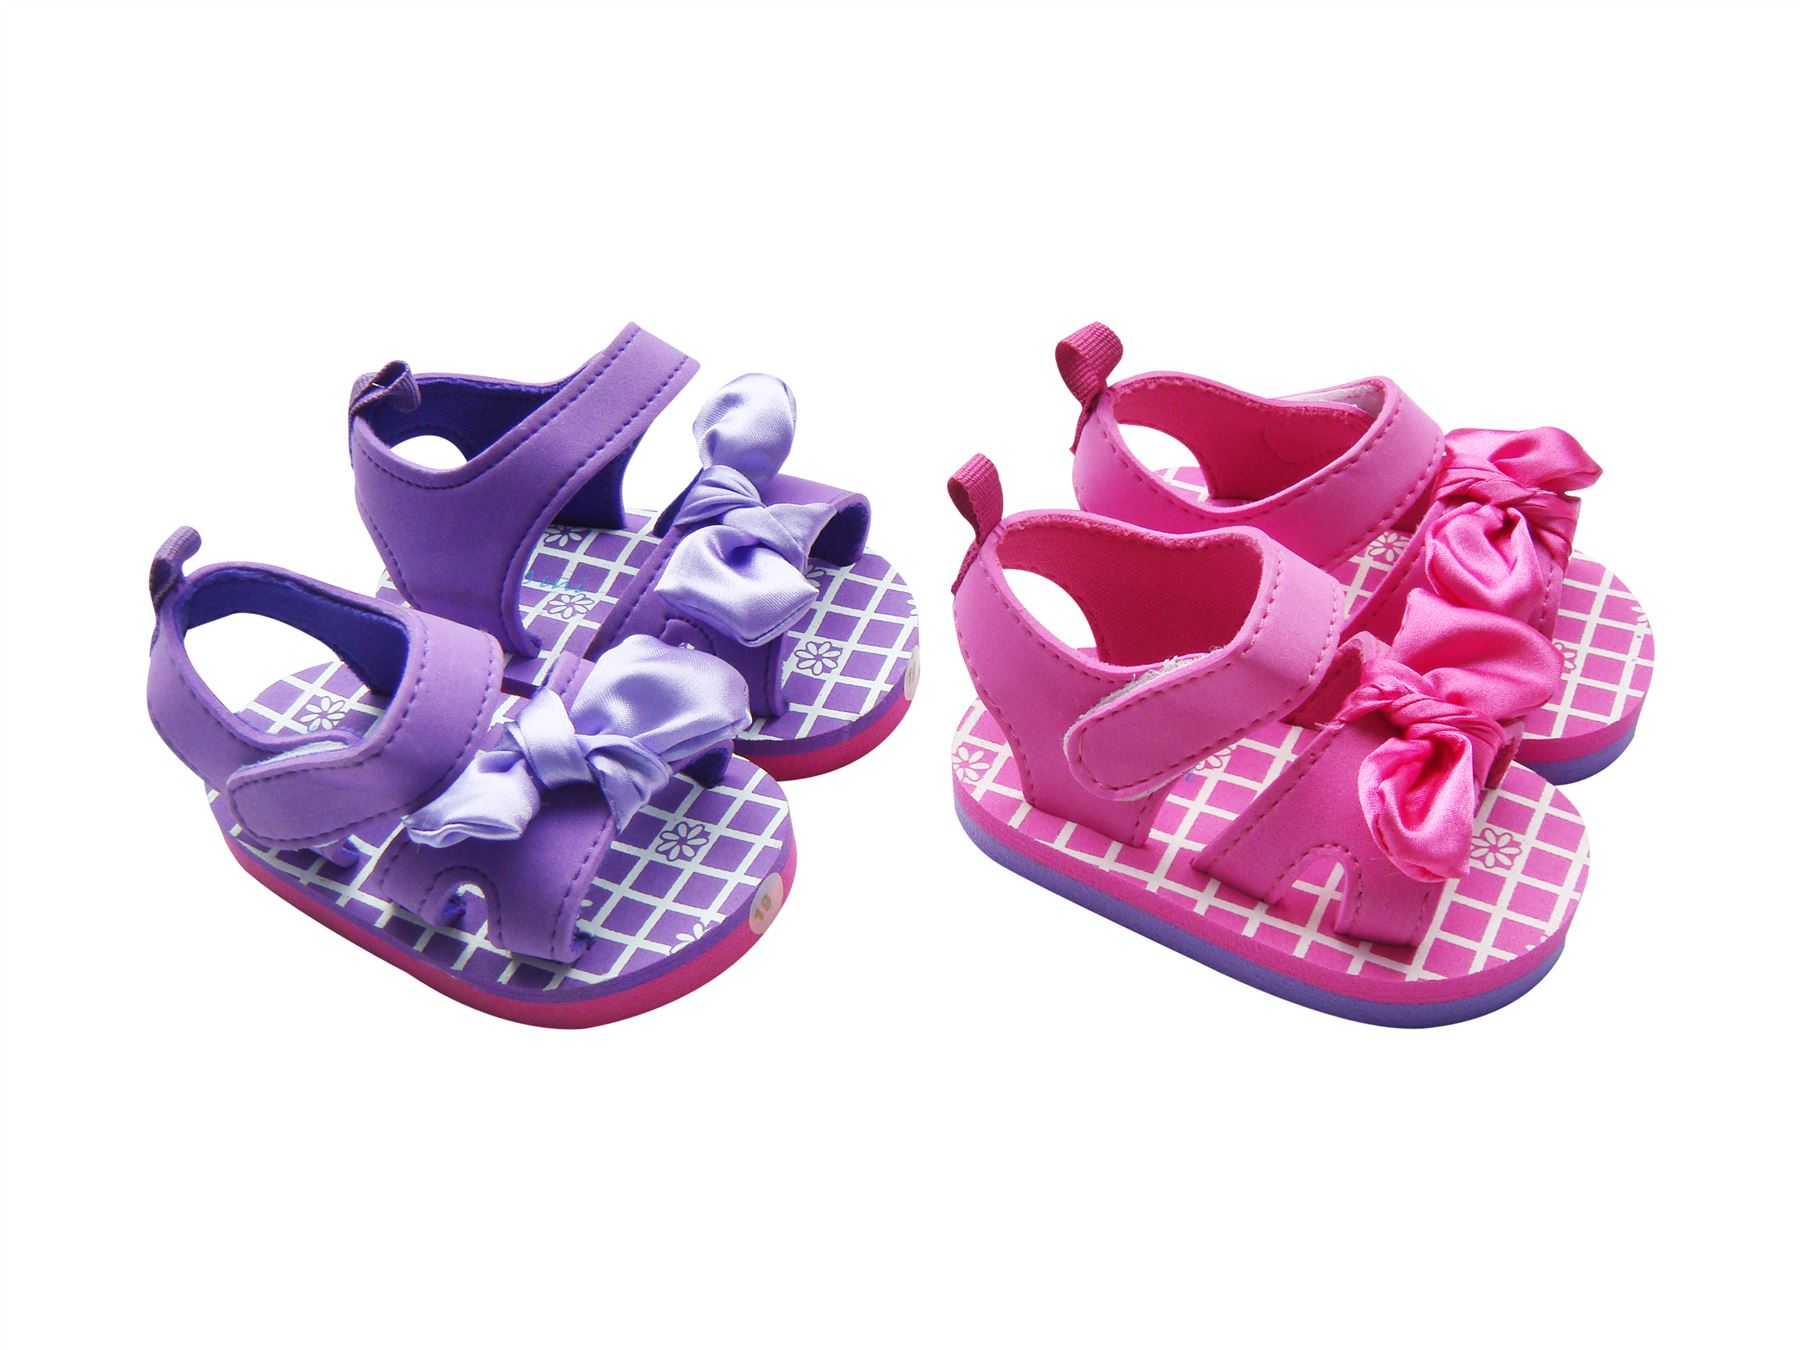 Mabini Baby Girls Pink Or Purple Summer Eva Sandals With